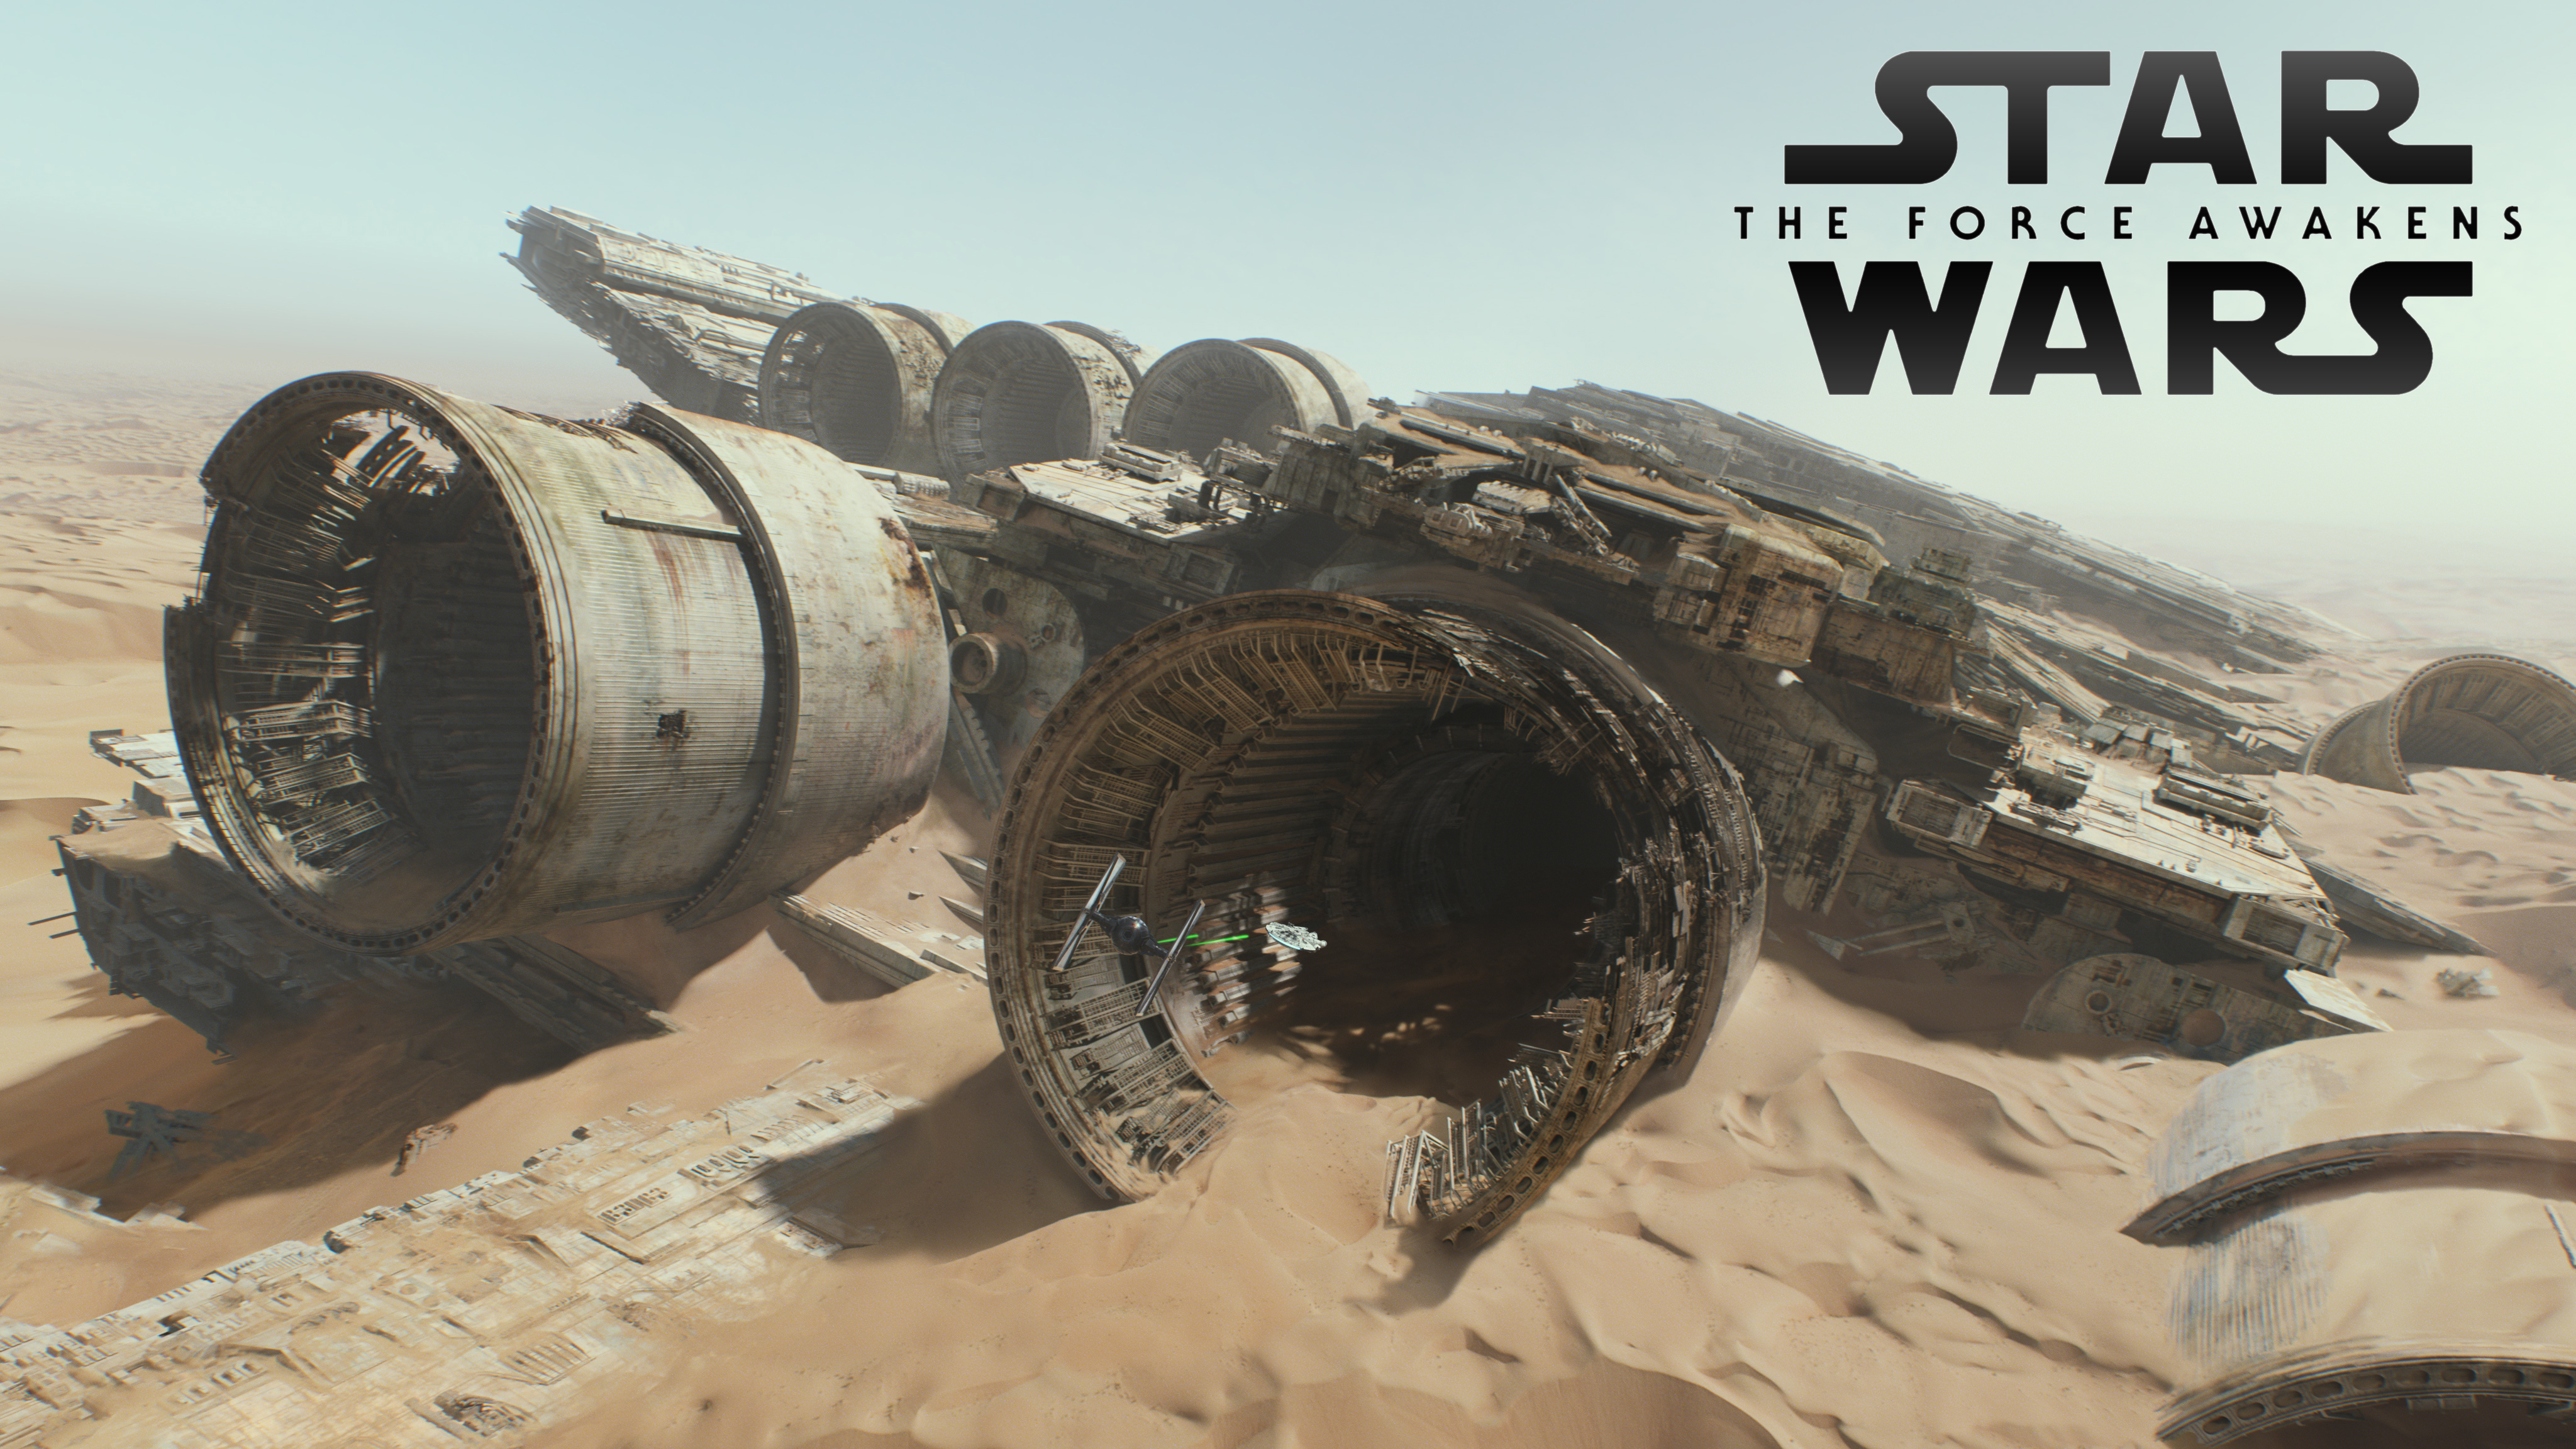 star wars wallpaper high res - photo #16